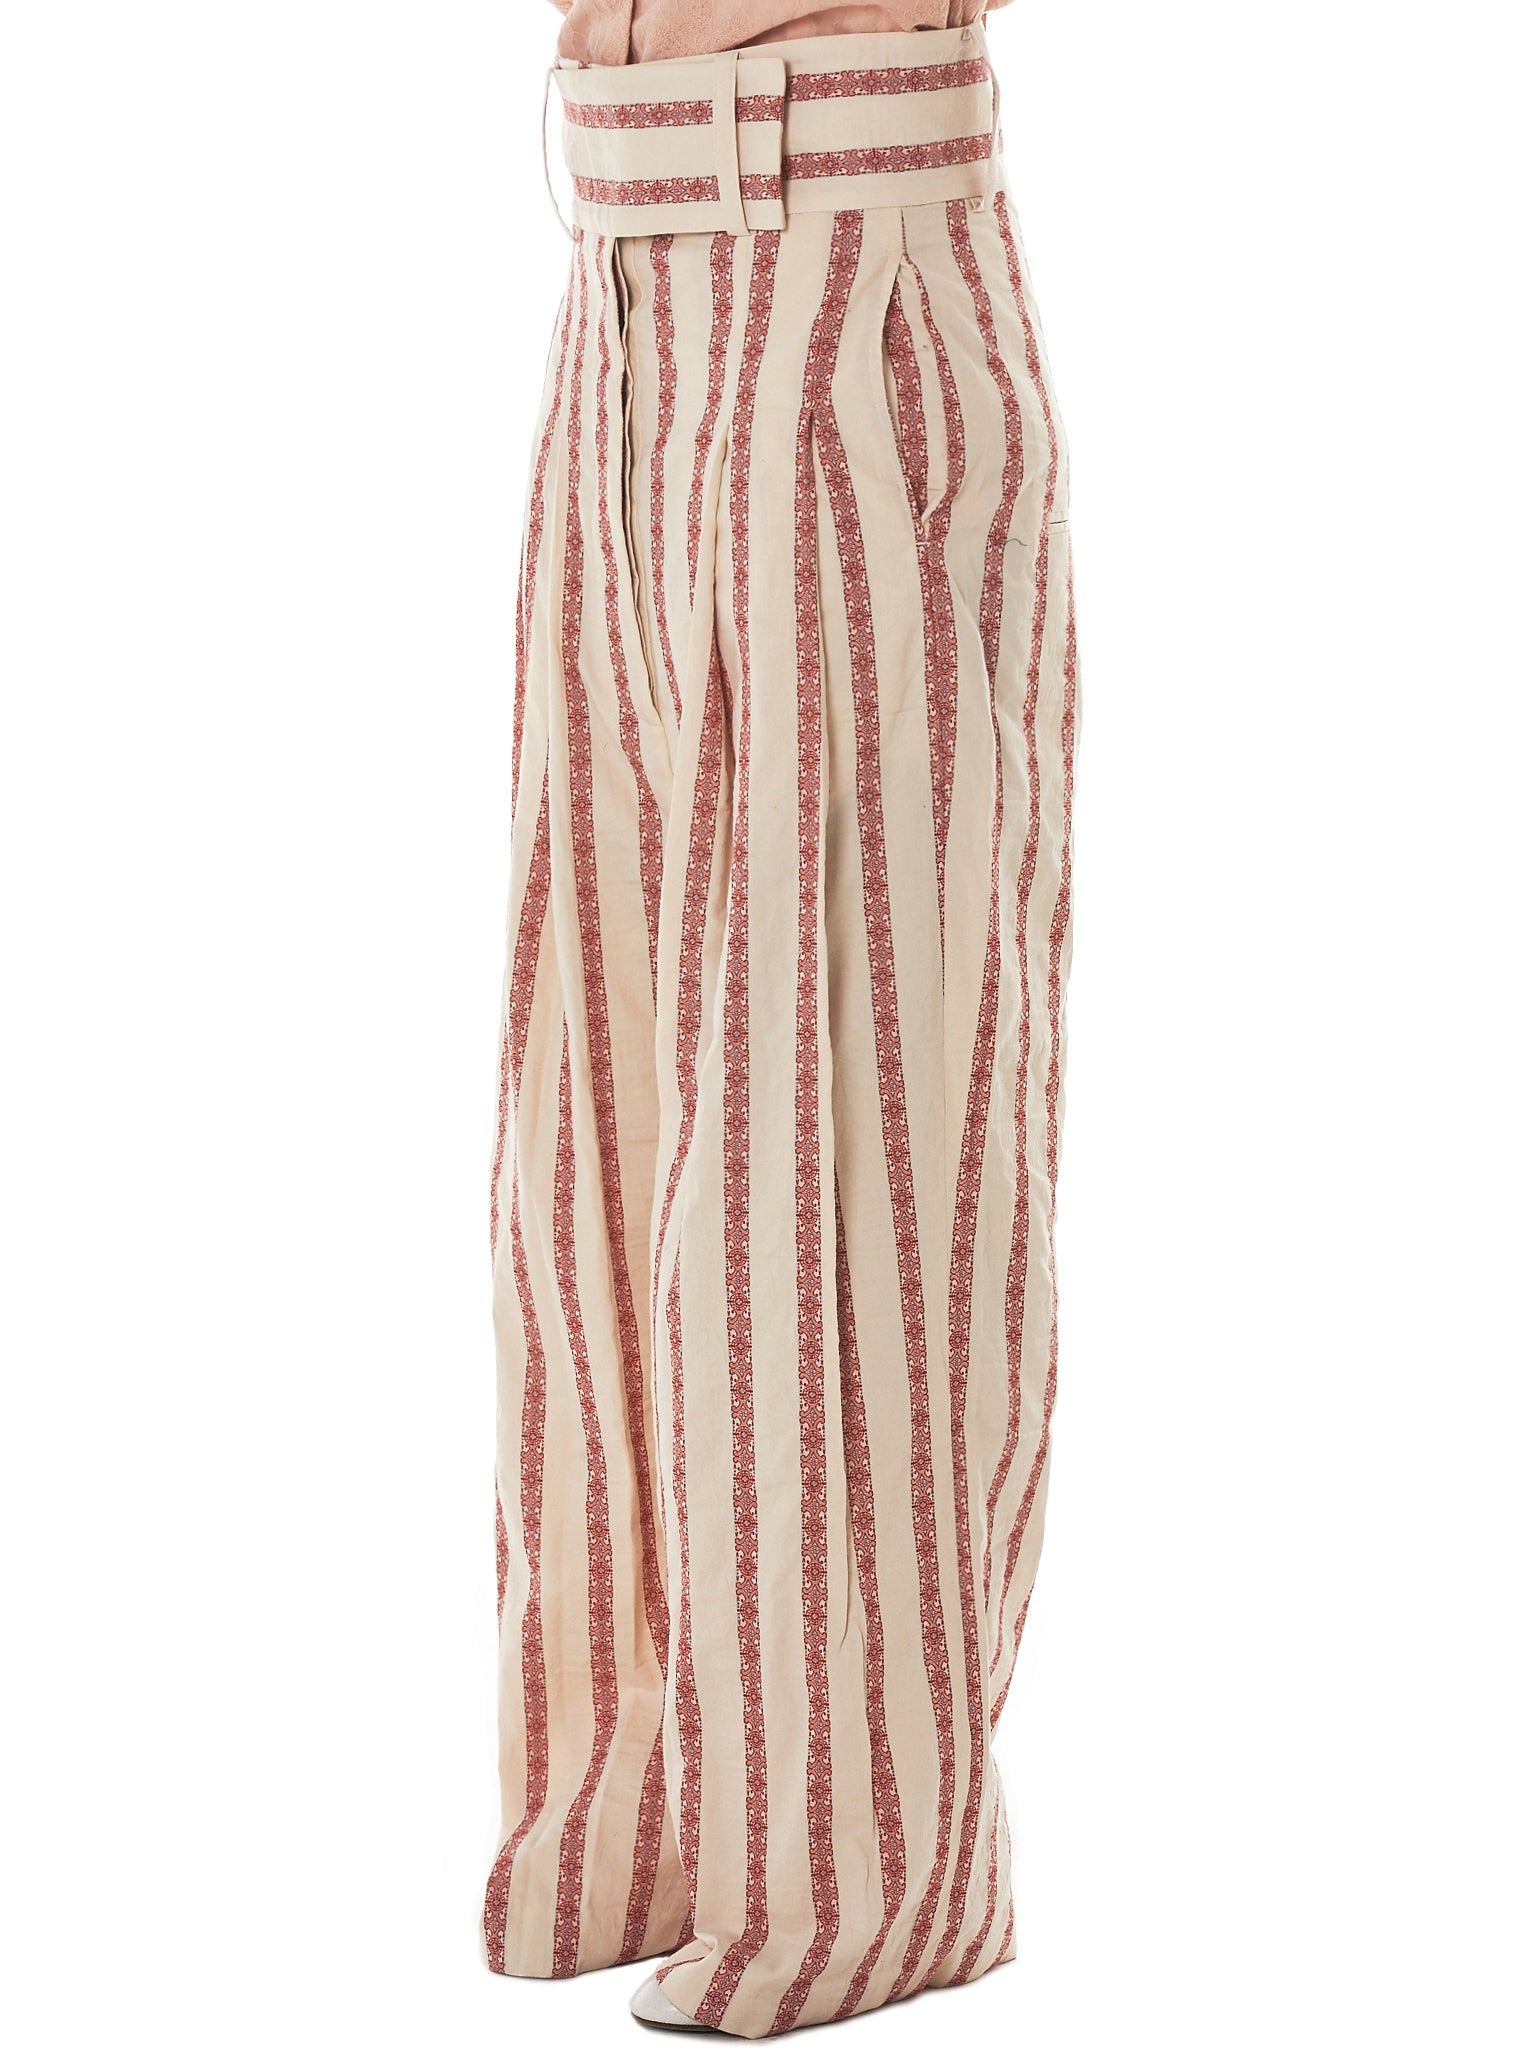 Daniel Gregory Natale Striped Trousers - Hlorenzo Side